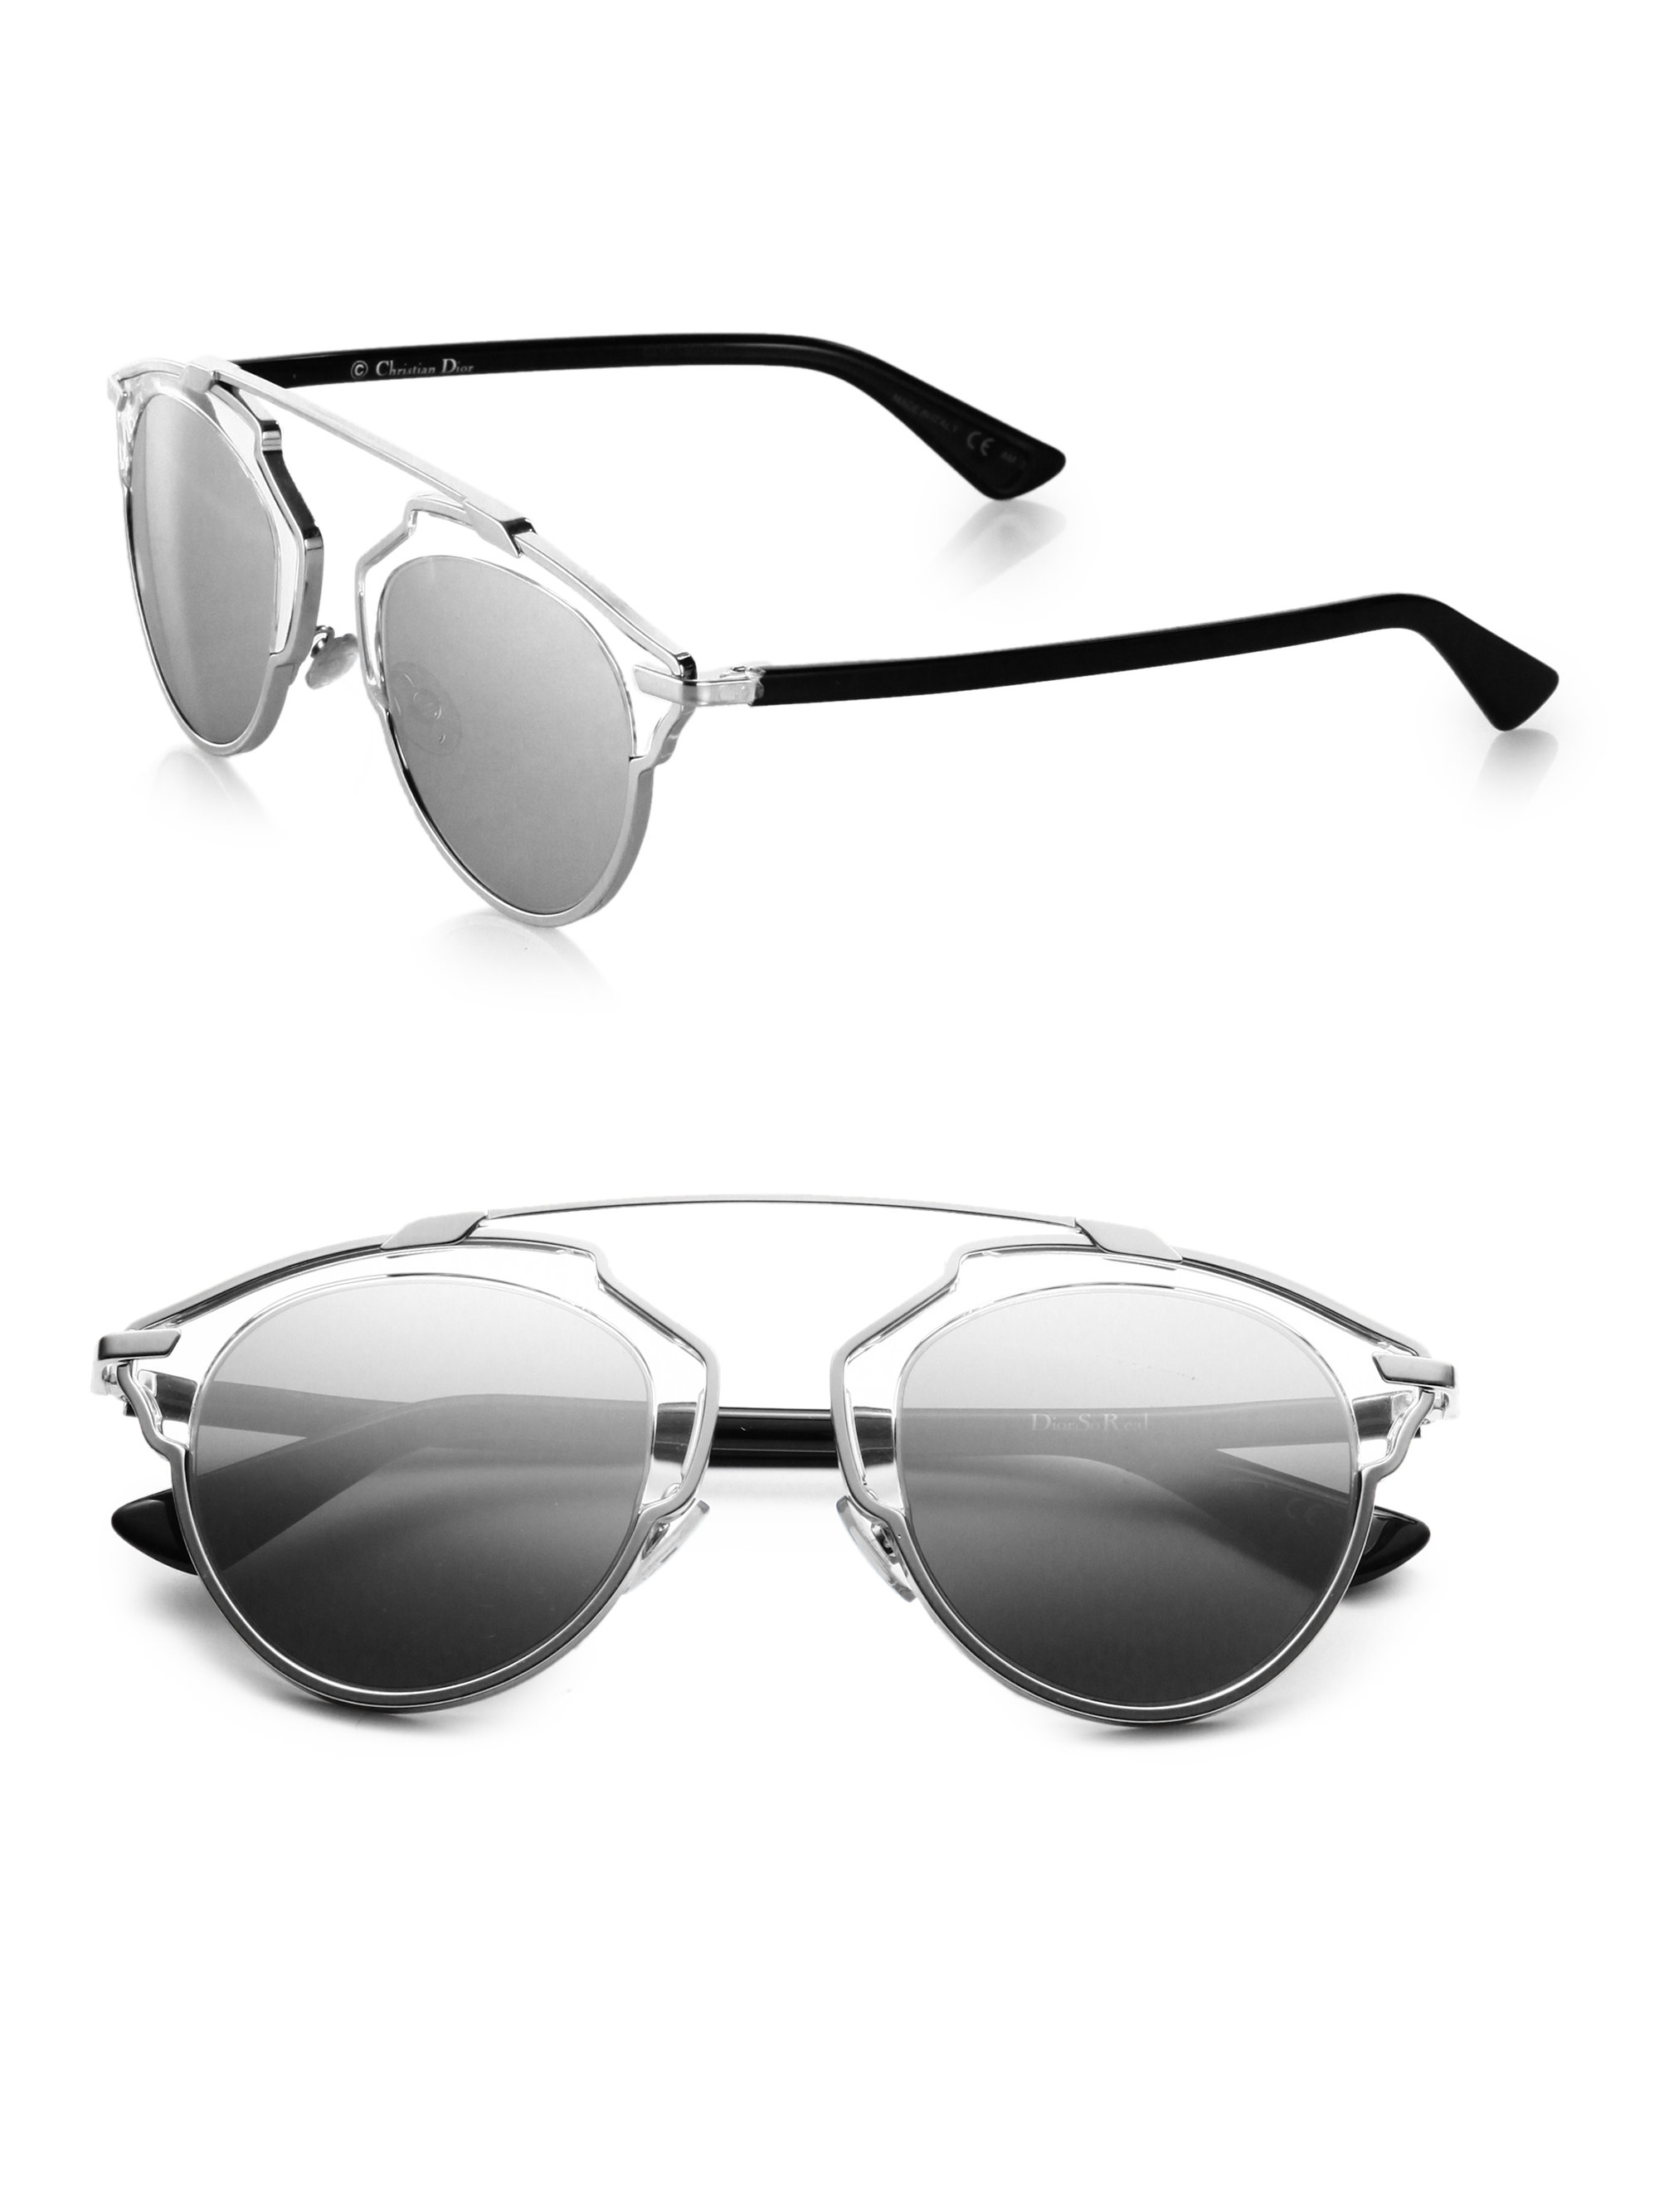 Dior Sunglasses So Real  dior sunglasses so real silver 6am mall com